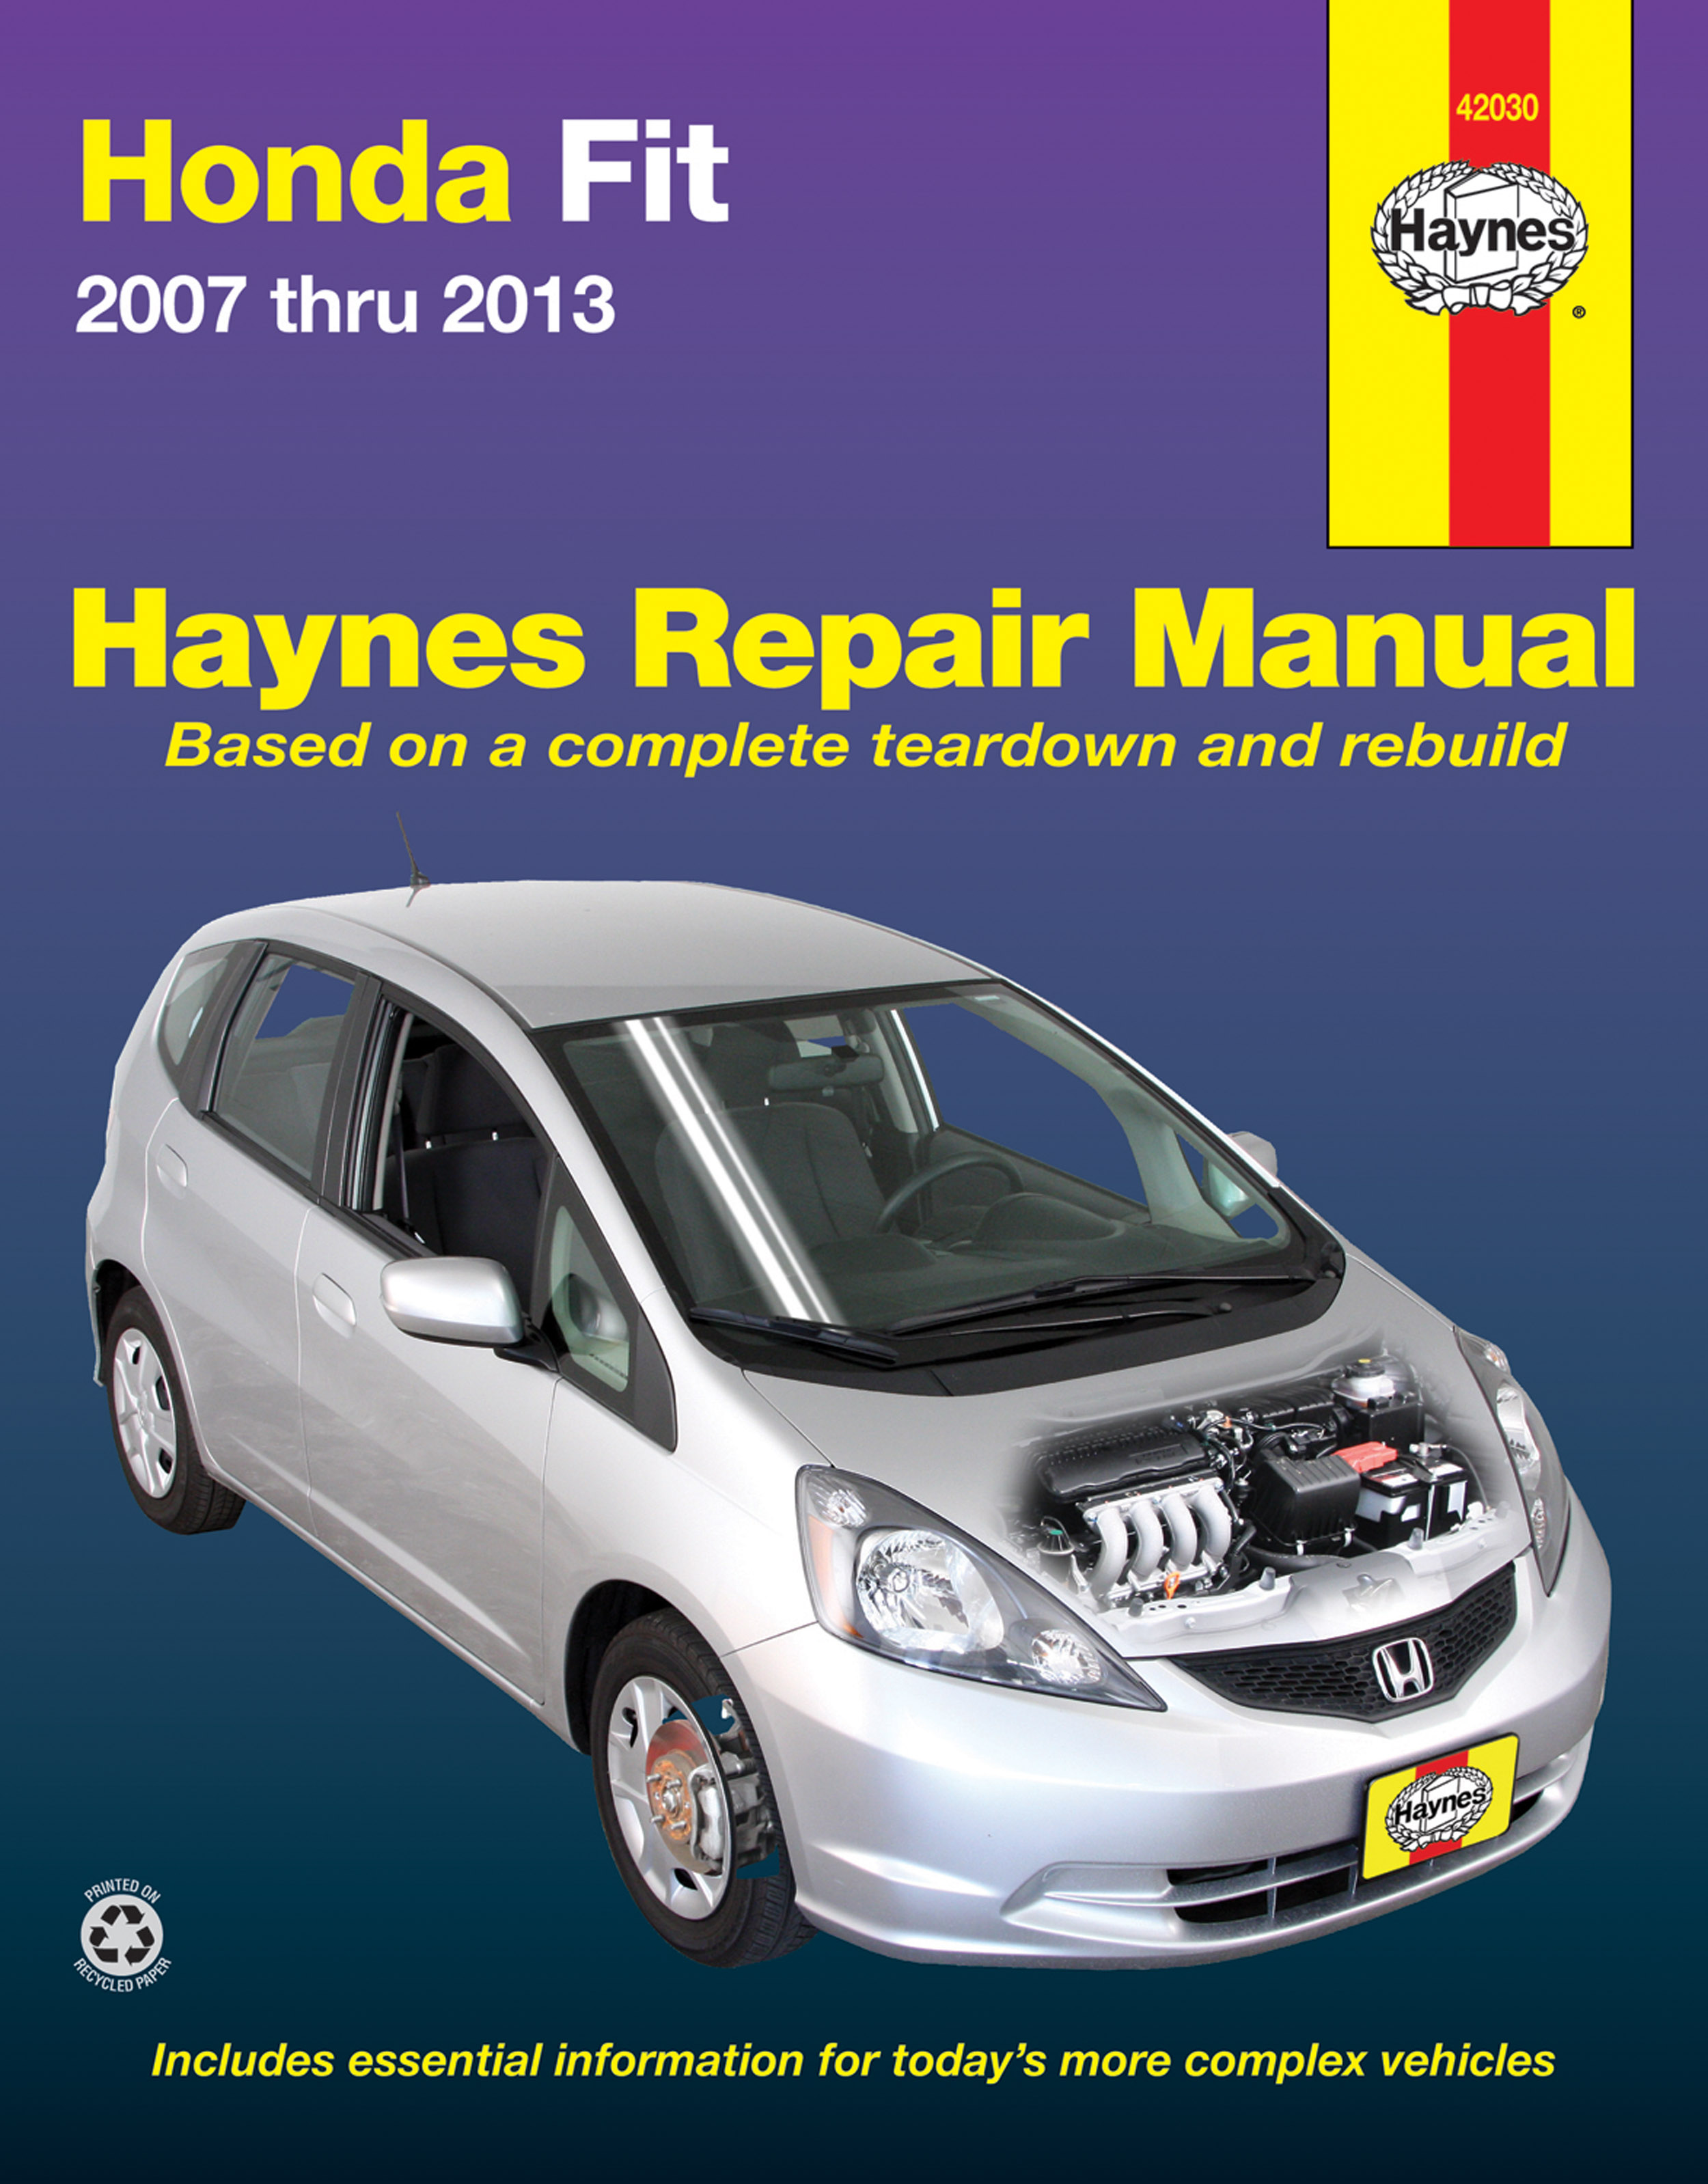 honda fit 07 13 haynes repair manual haynes manuals rh haynes com haynes automotive repair manual download haynes automotive repair manuals canada